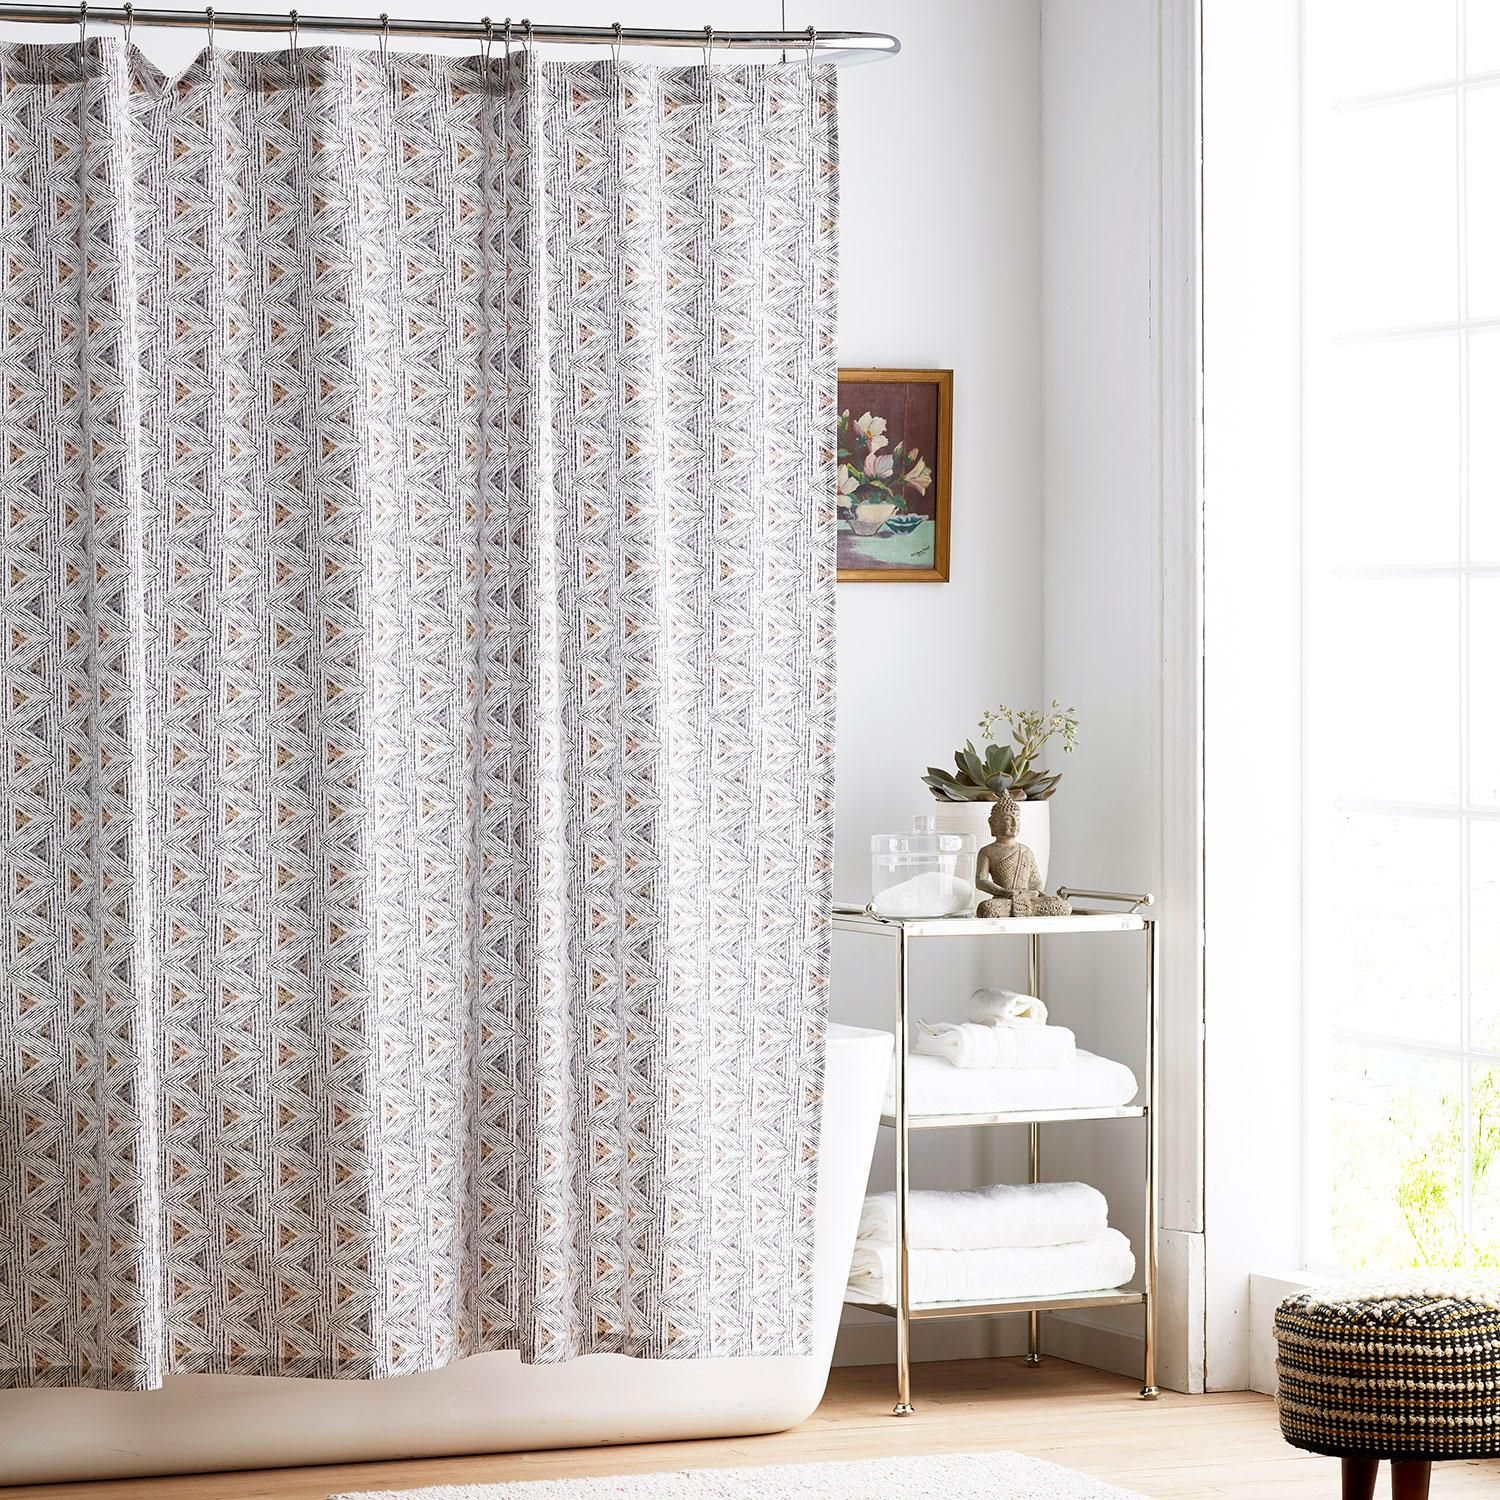 Zahra Organic Percale Shower Curtain The Company Store In 2020